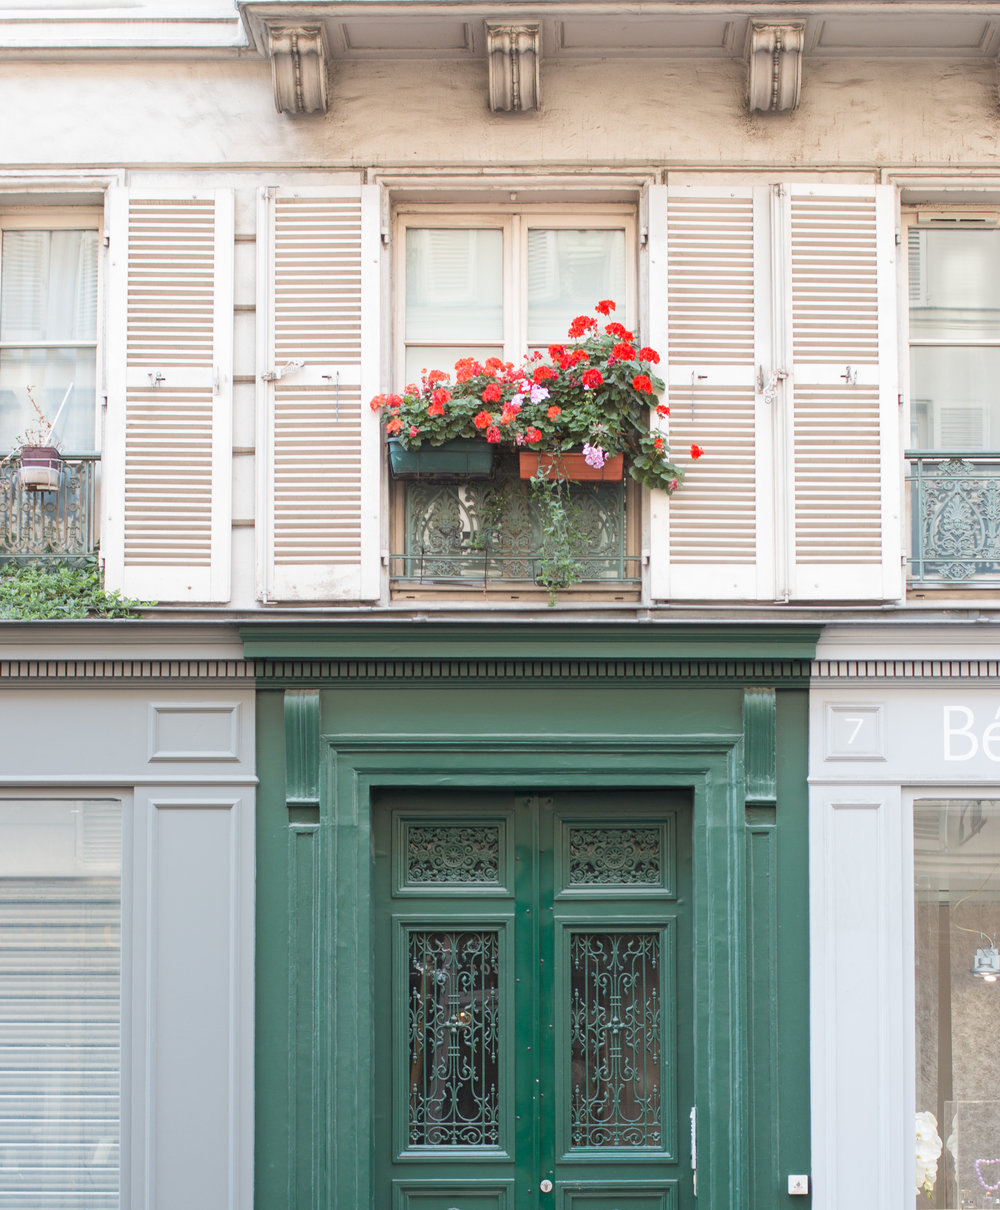 paris window and green door